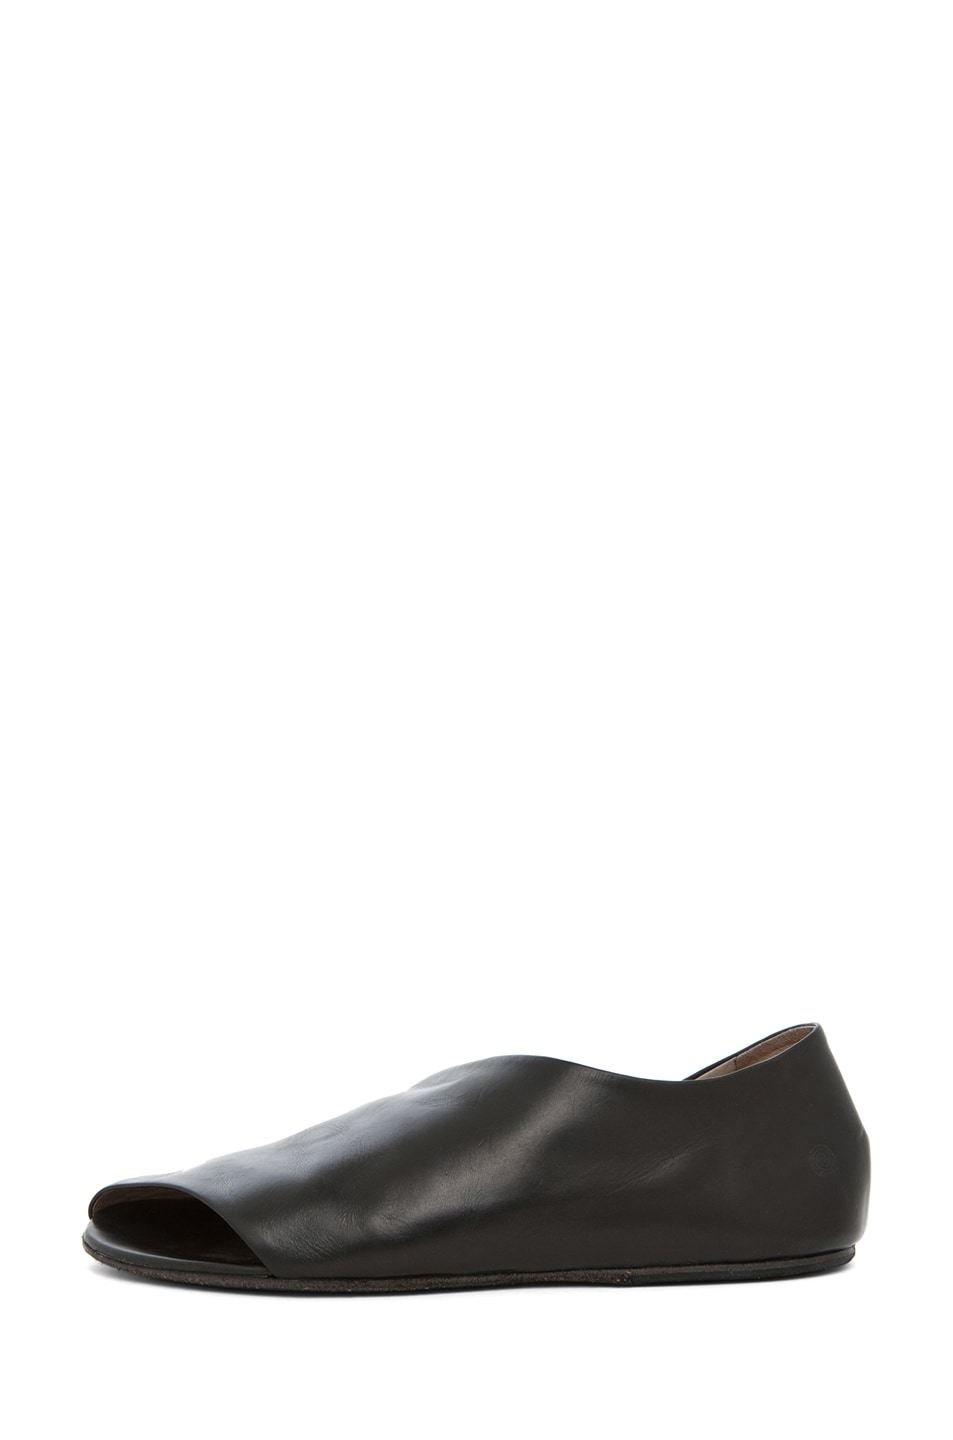 Image 1 of Marsell Arsella Flat in Black